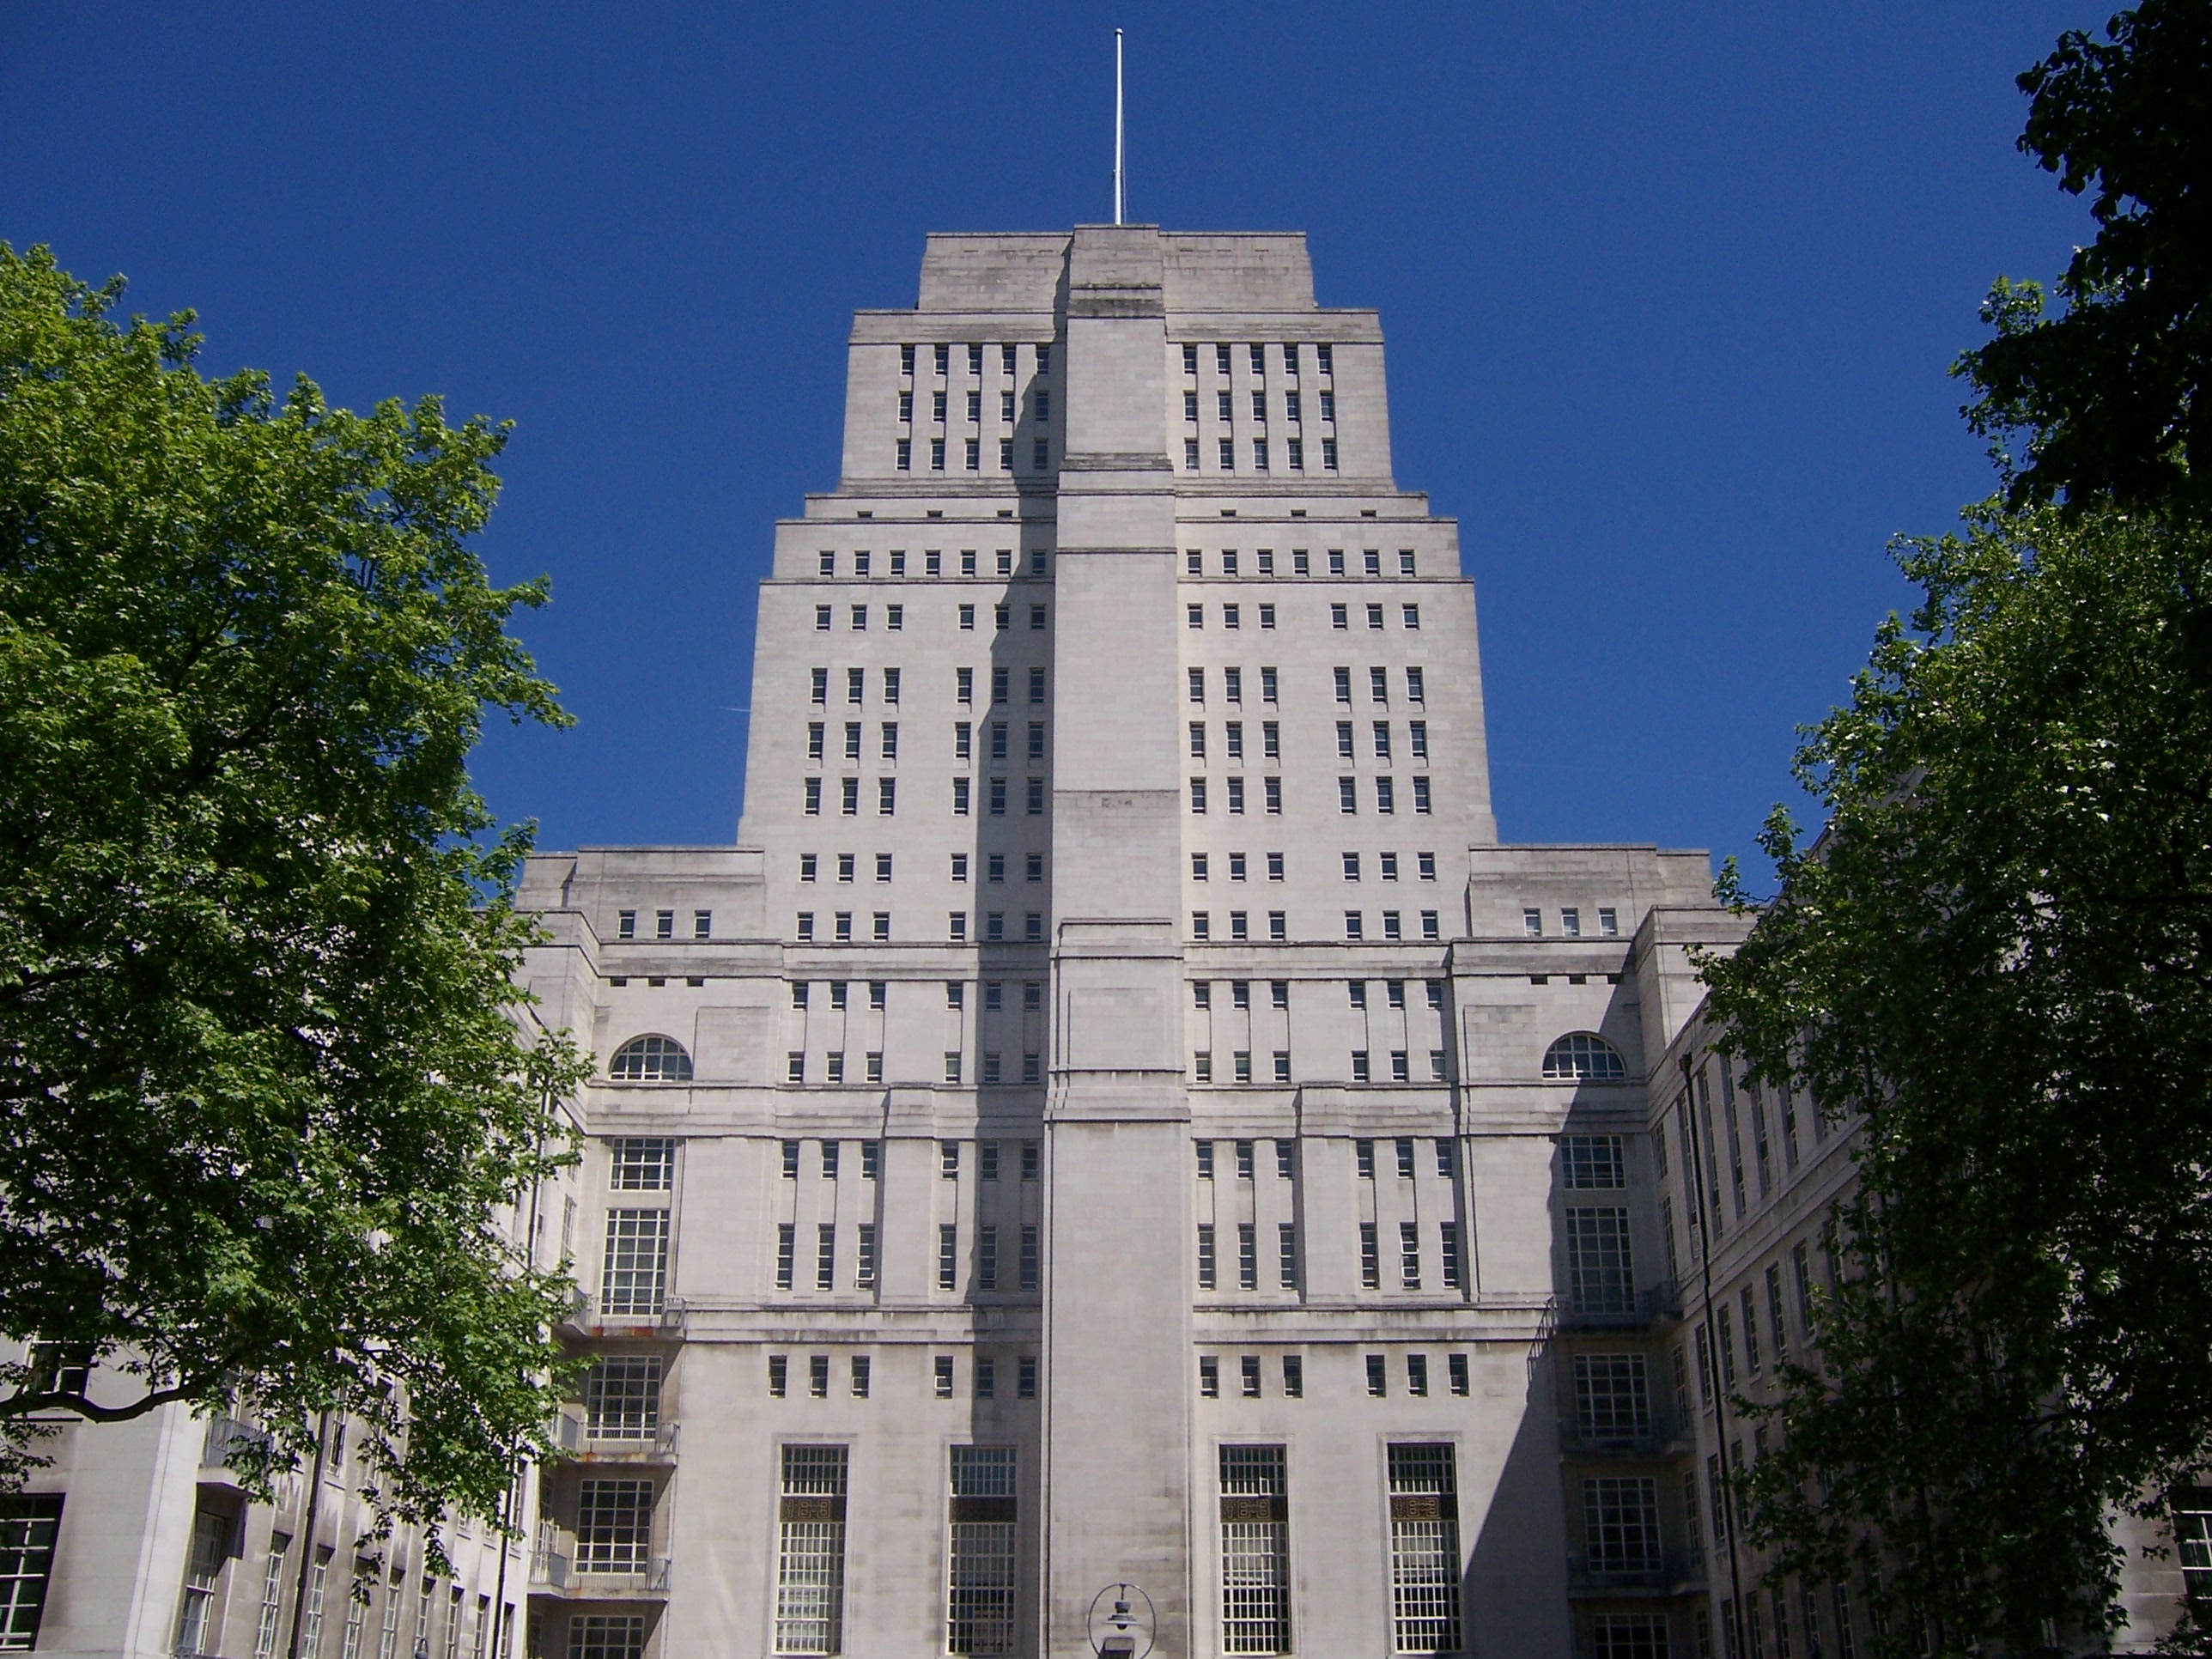 Senate House UoL Cannabis, Politics, and Scientific Revisionism